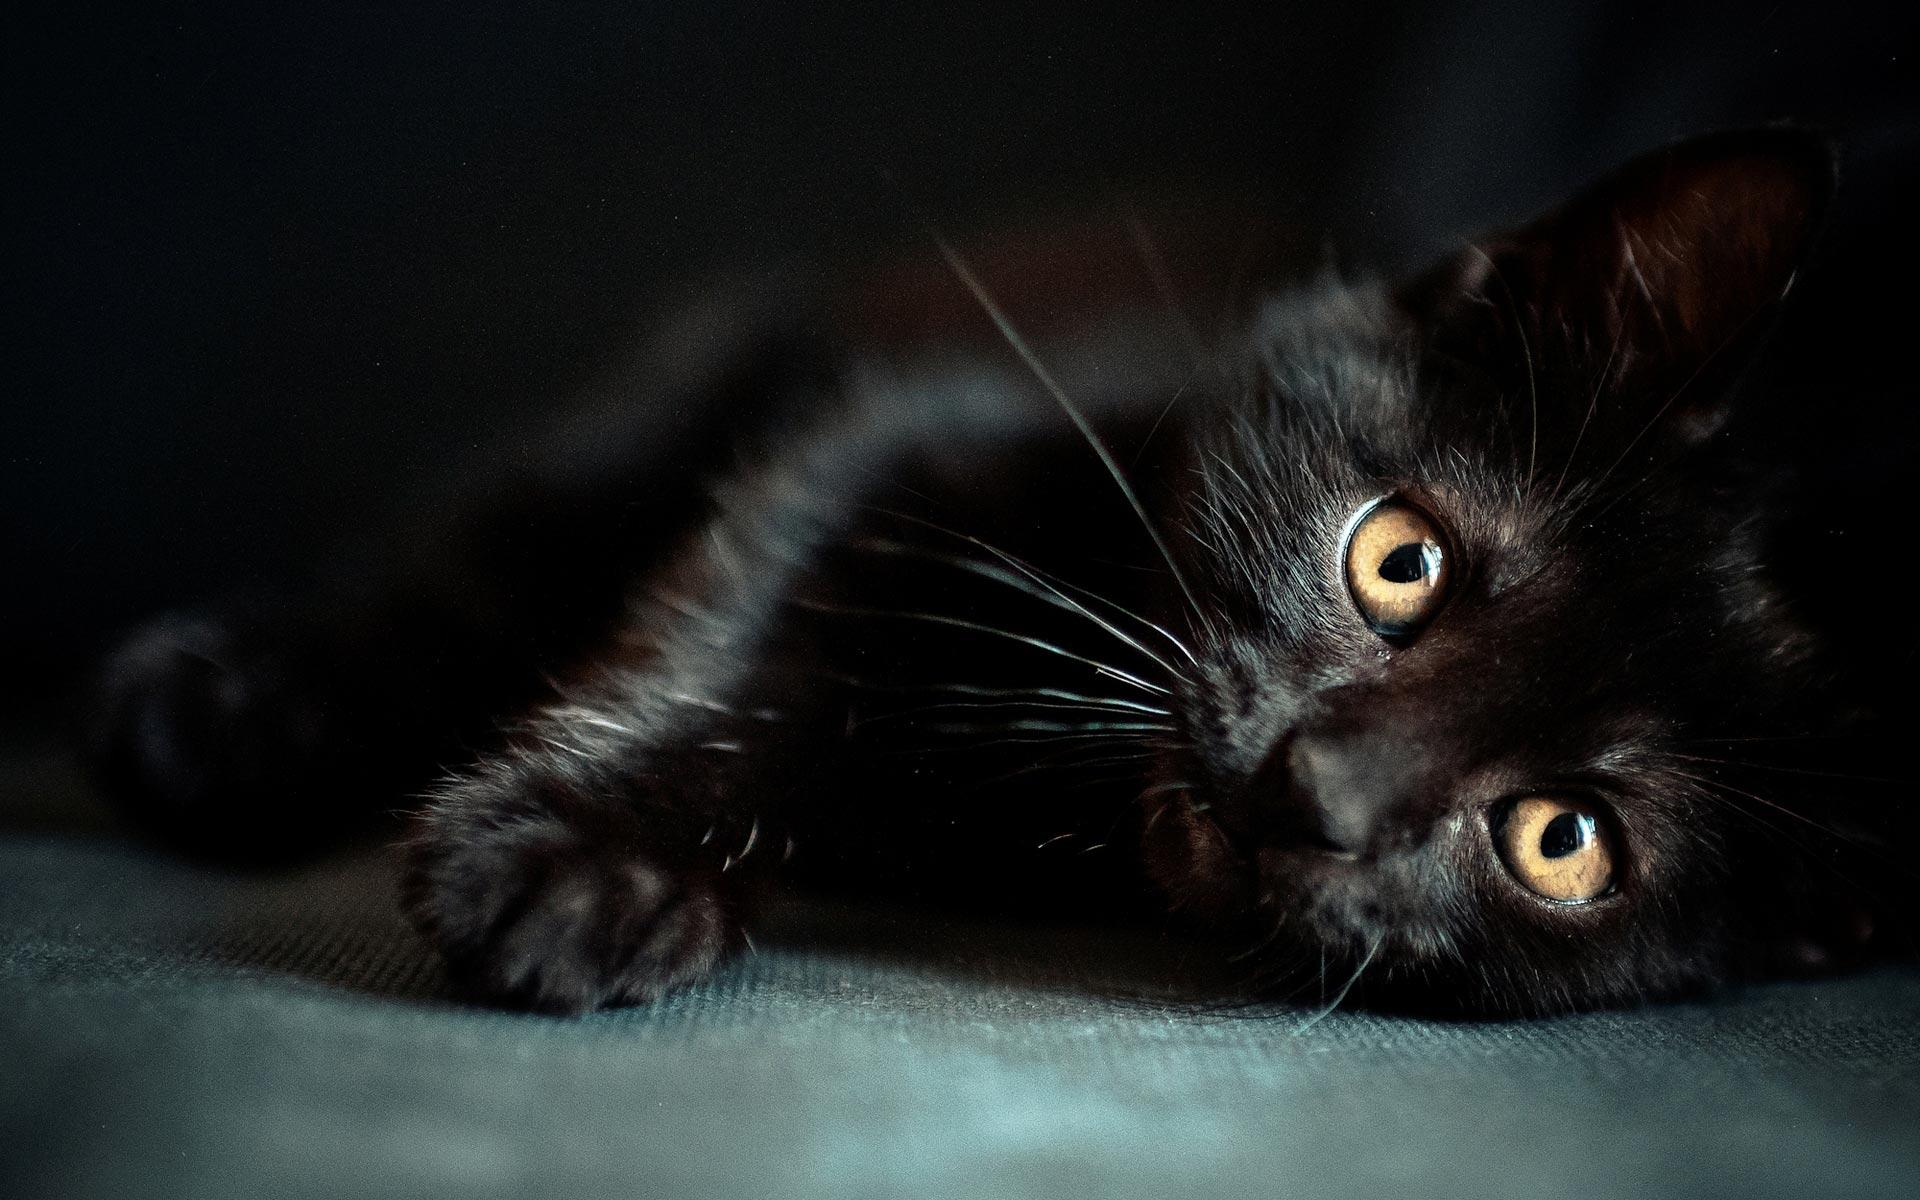 Black Cat Wallpapers   Top Black Cat Backgrounds 1920x1200